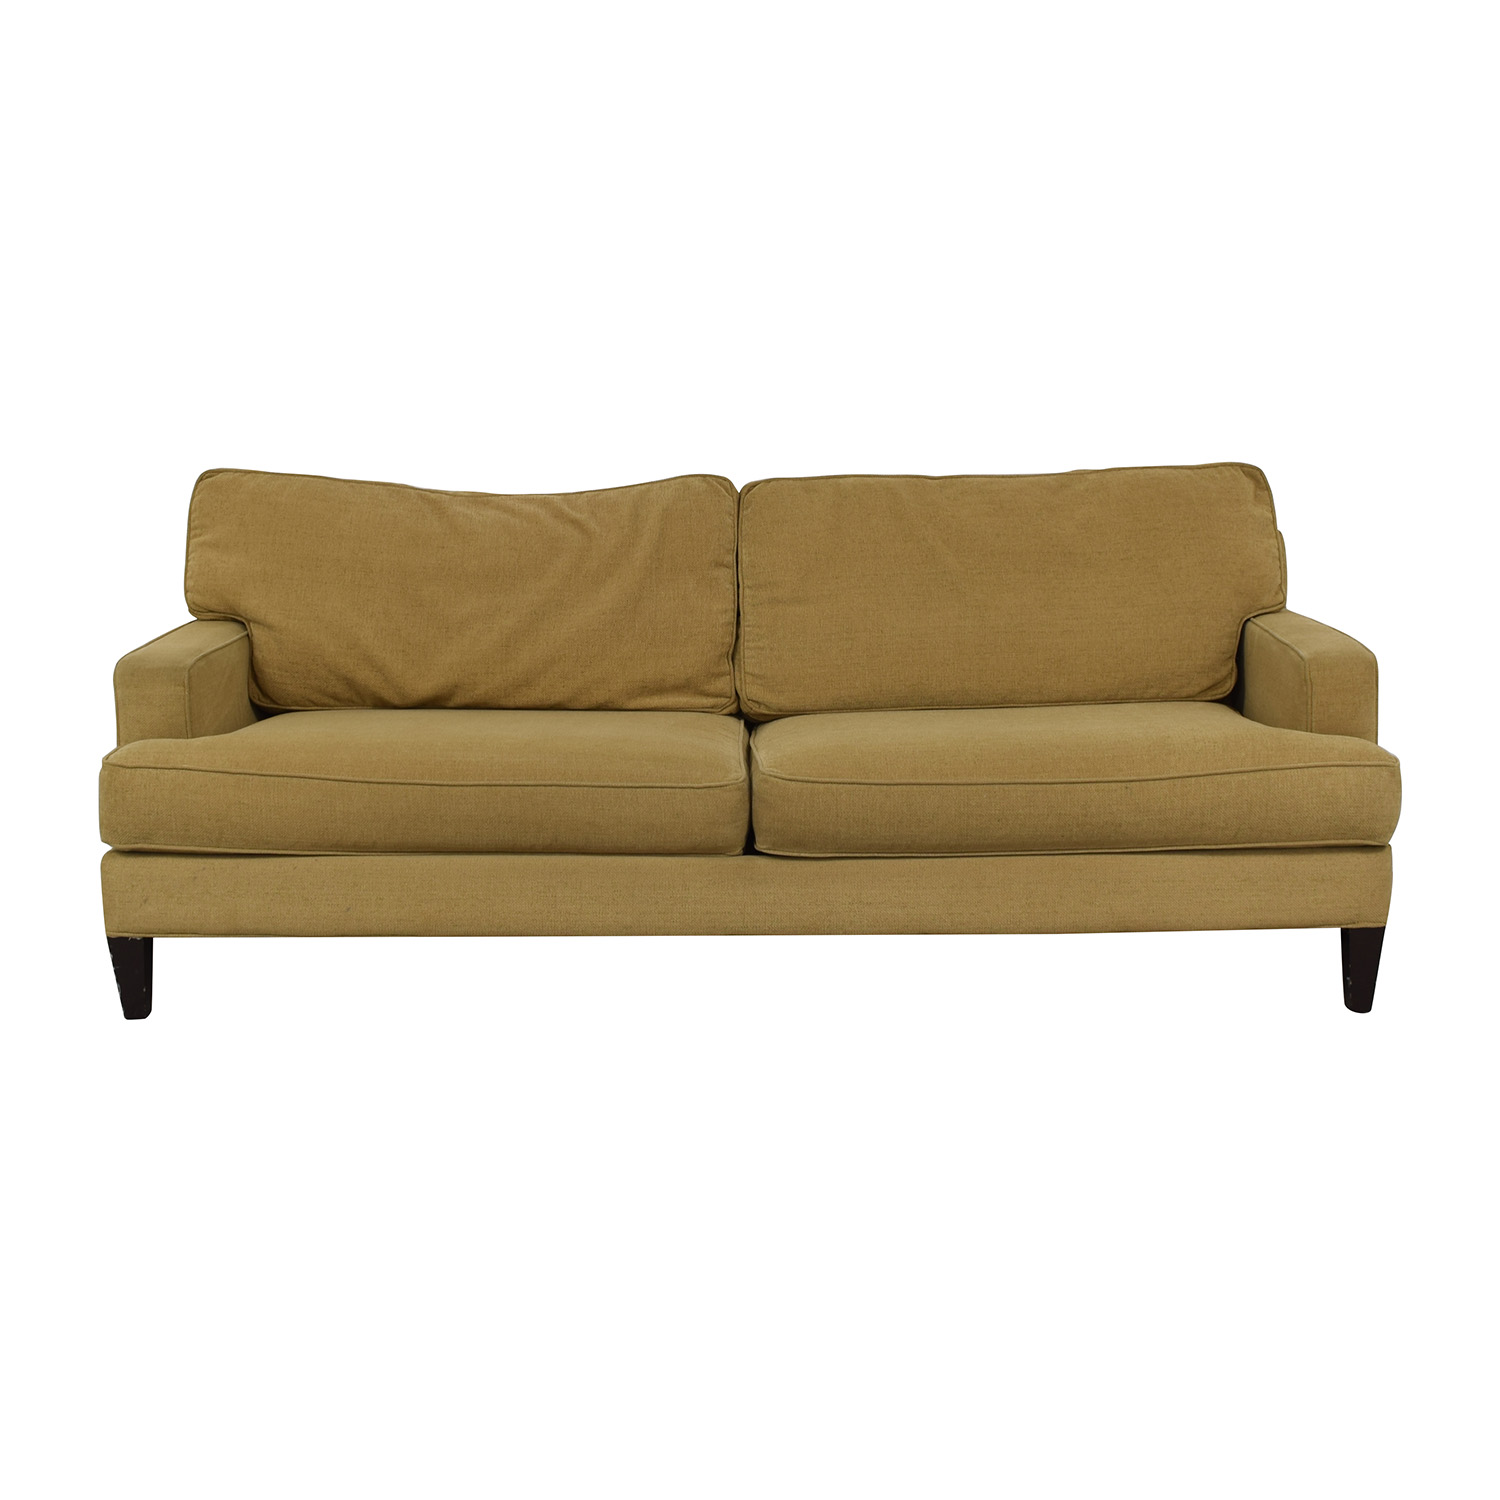 Pottery Barn Tan Two-Cushion Couch Pottery Barn